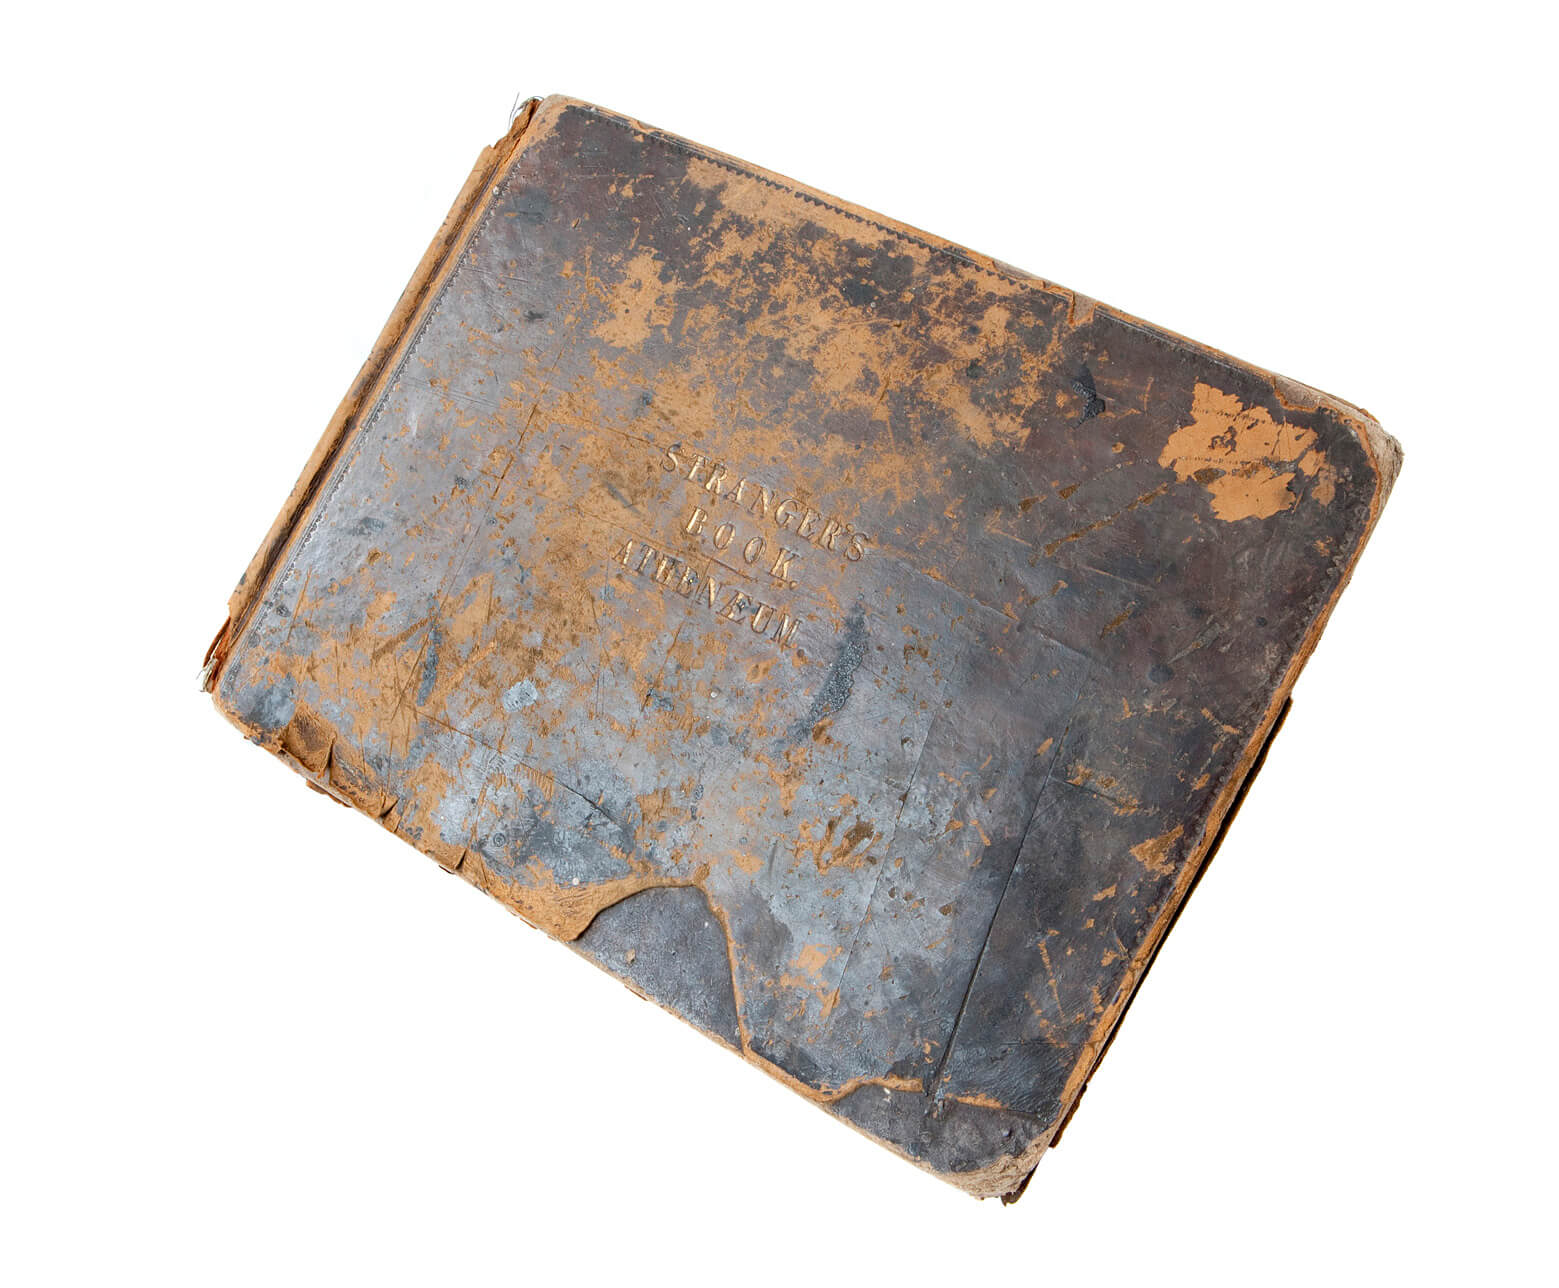 The leather bound 'book of strangers in the RCS archive which is filled with visitors' signatures including Charles Dickens, who hosted the inaugural soiree of the Glasgow Athenaeum, and Ralph Waldo Emerson.